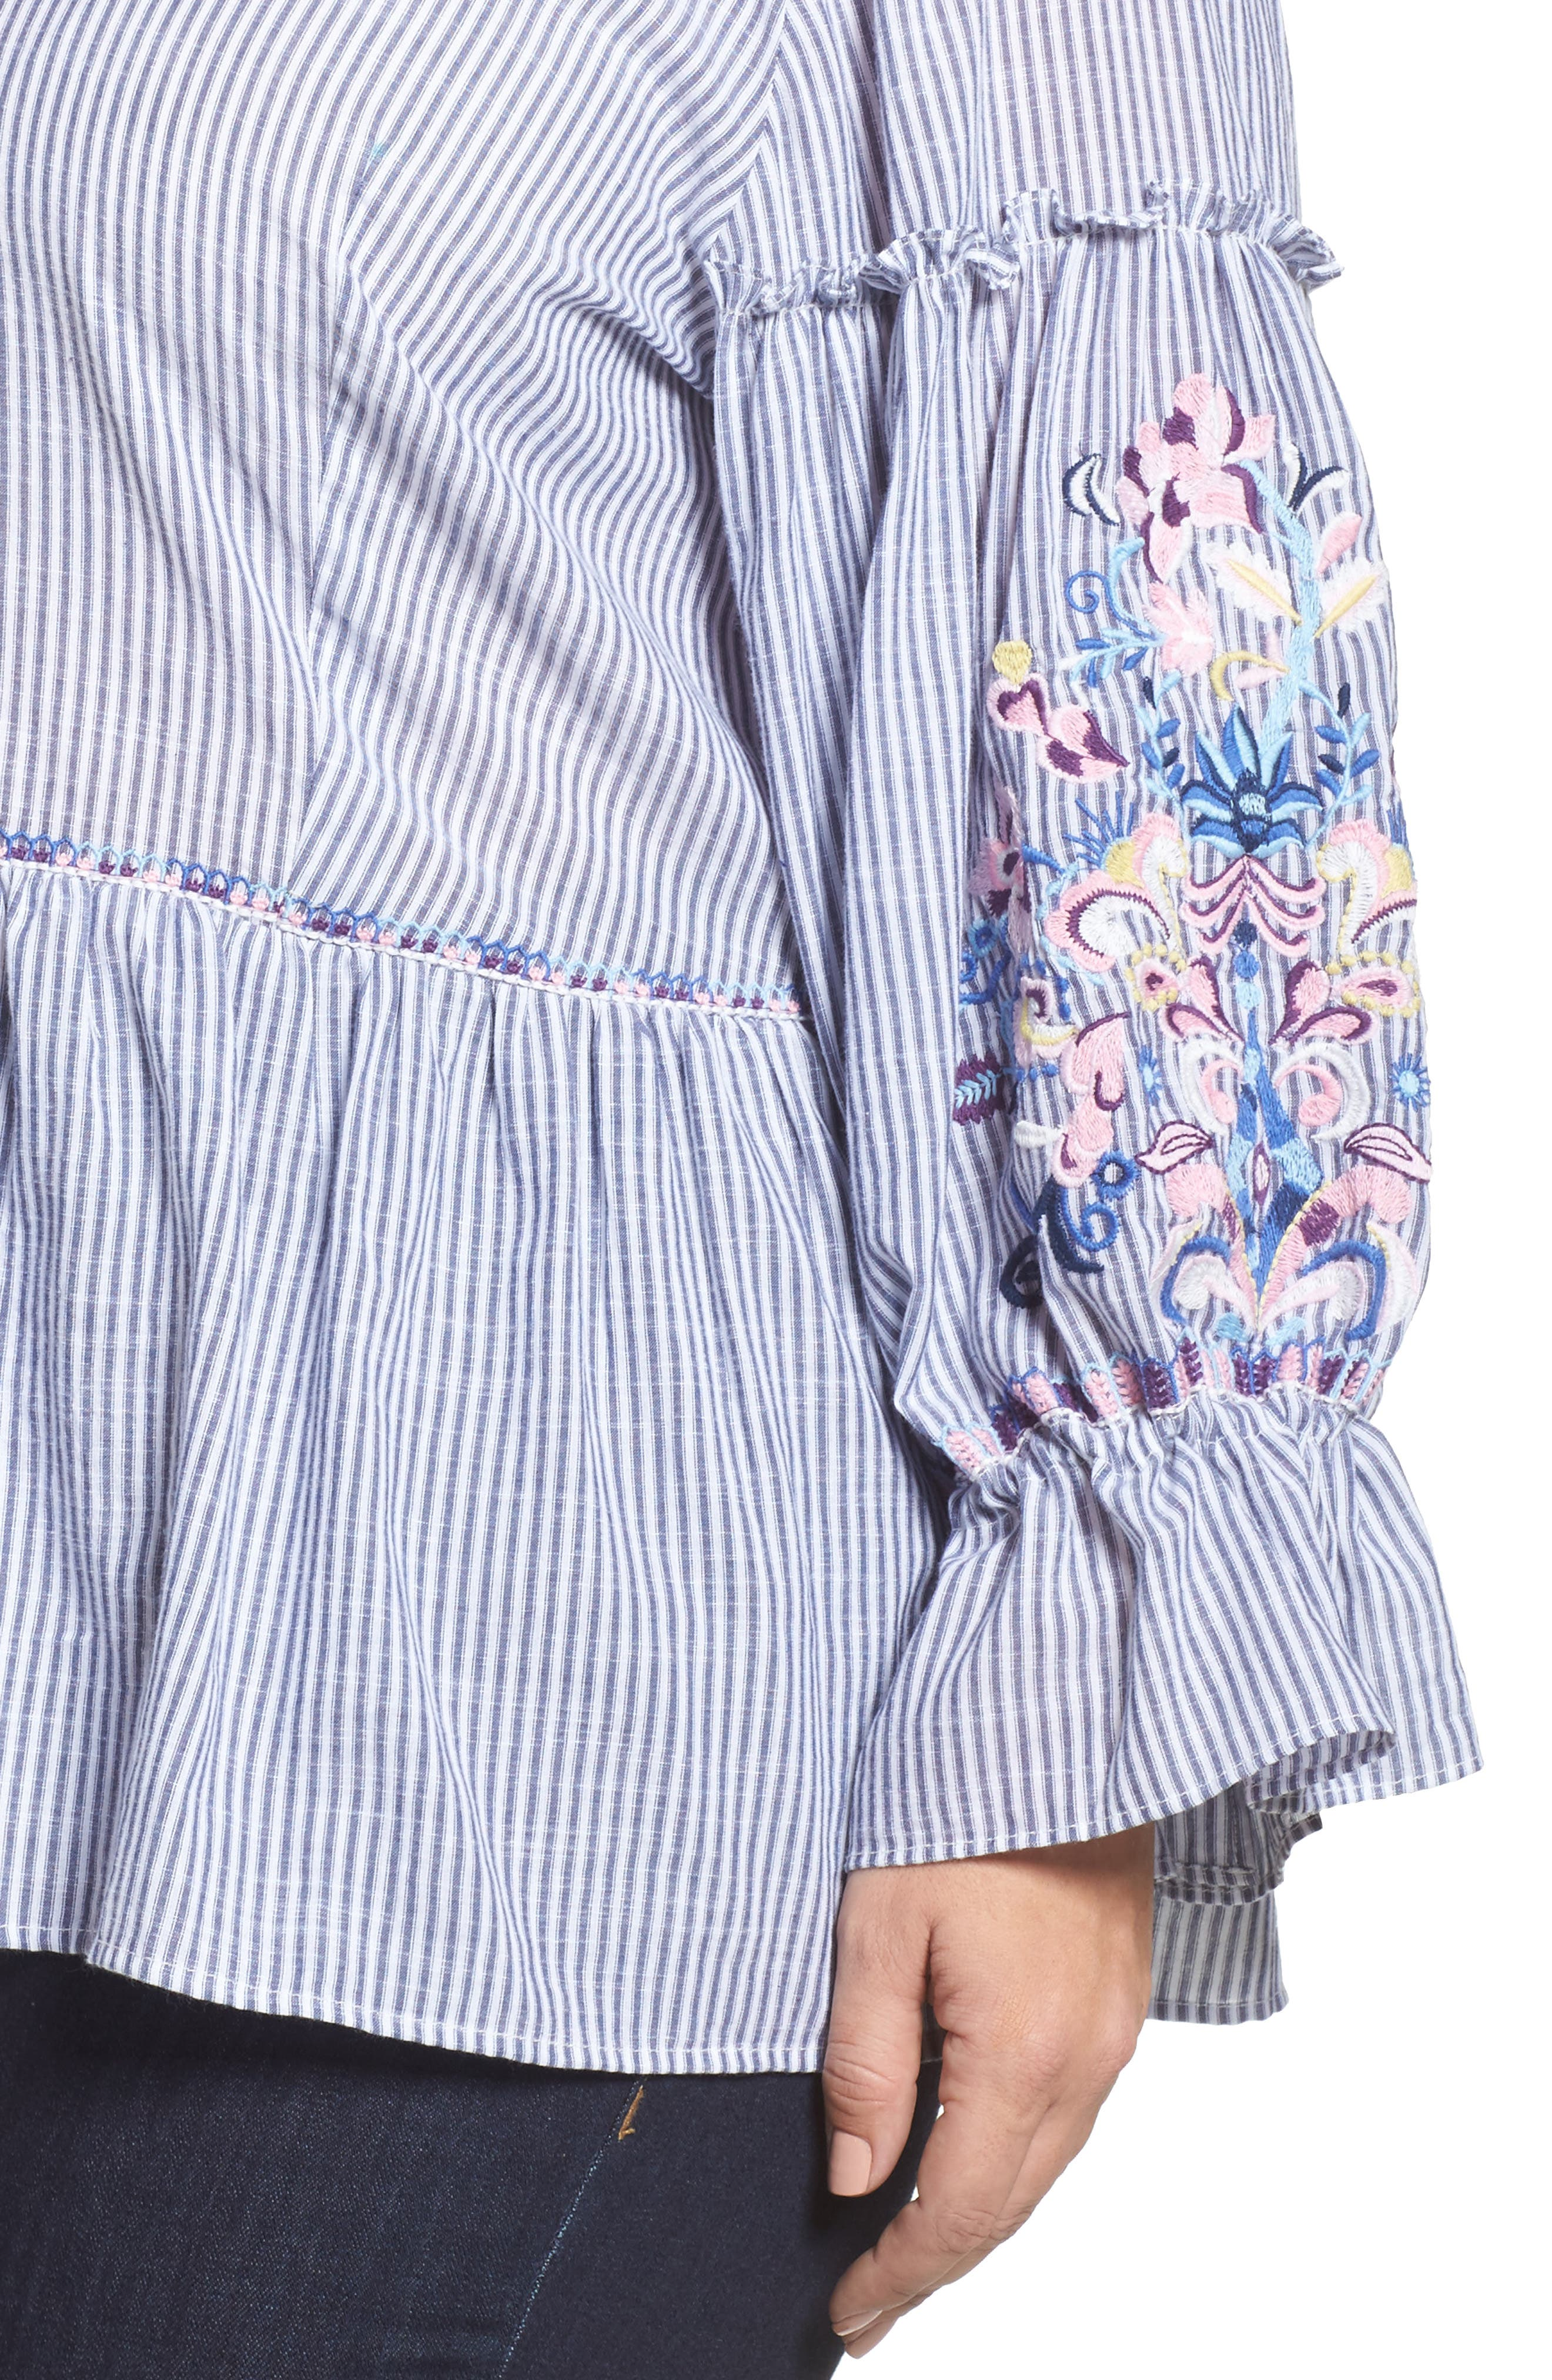 Embroidered Blouse,                             Alternate thumbnail 4, color,                             Blue-White